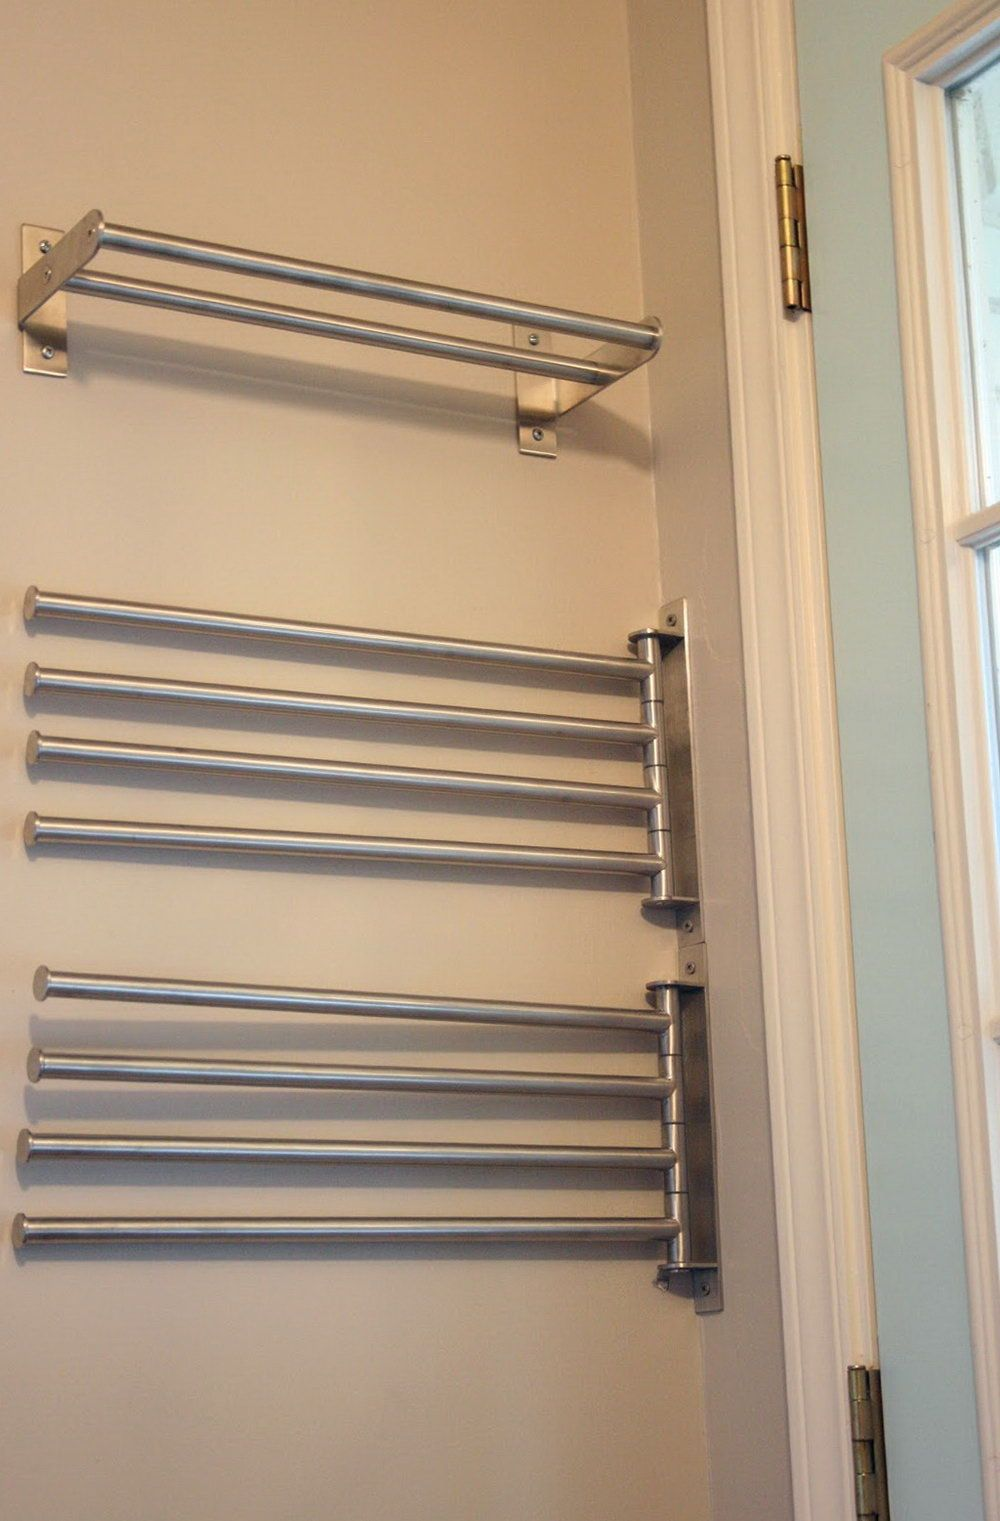 Laundry Room Hanging Drying Racks Laundry Room Drying Rack Laundry Rack Drying Rack Laundry